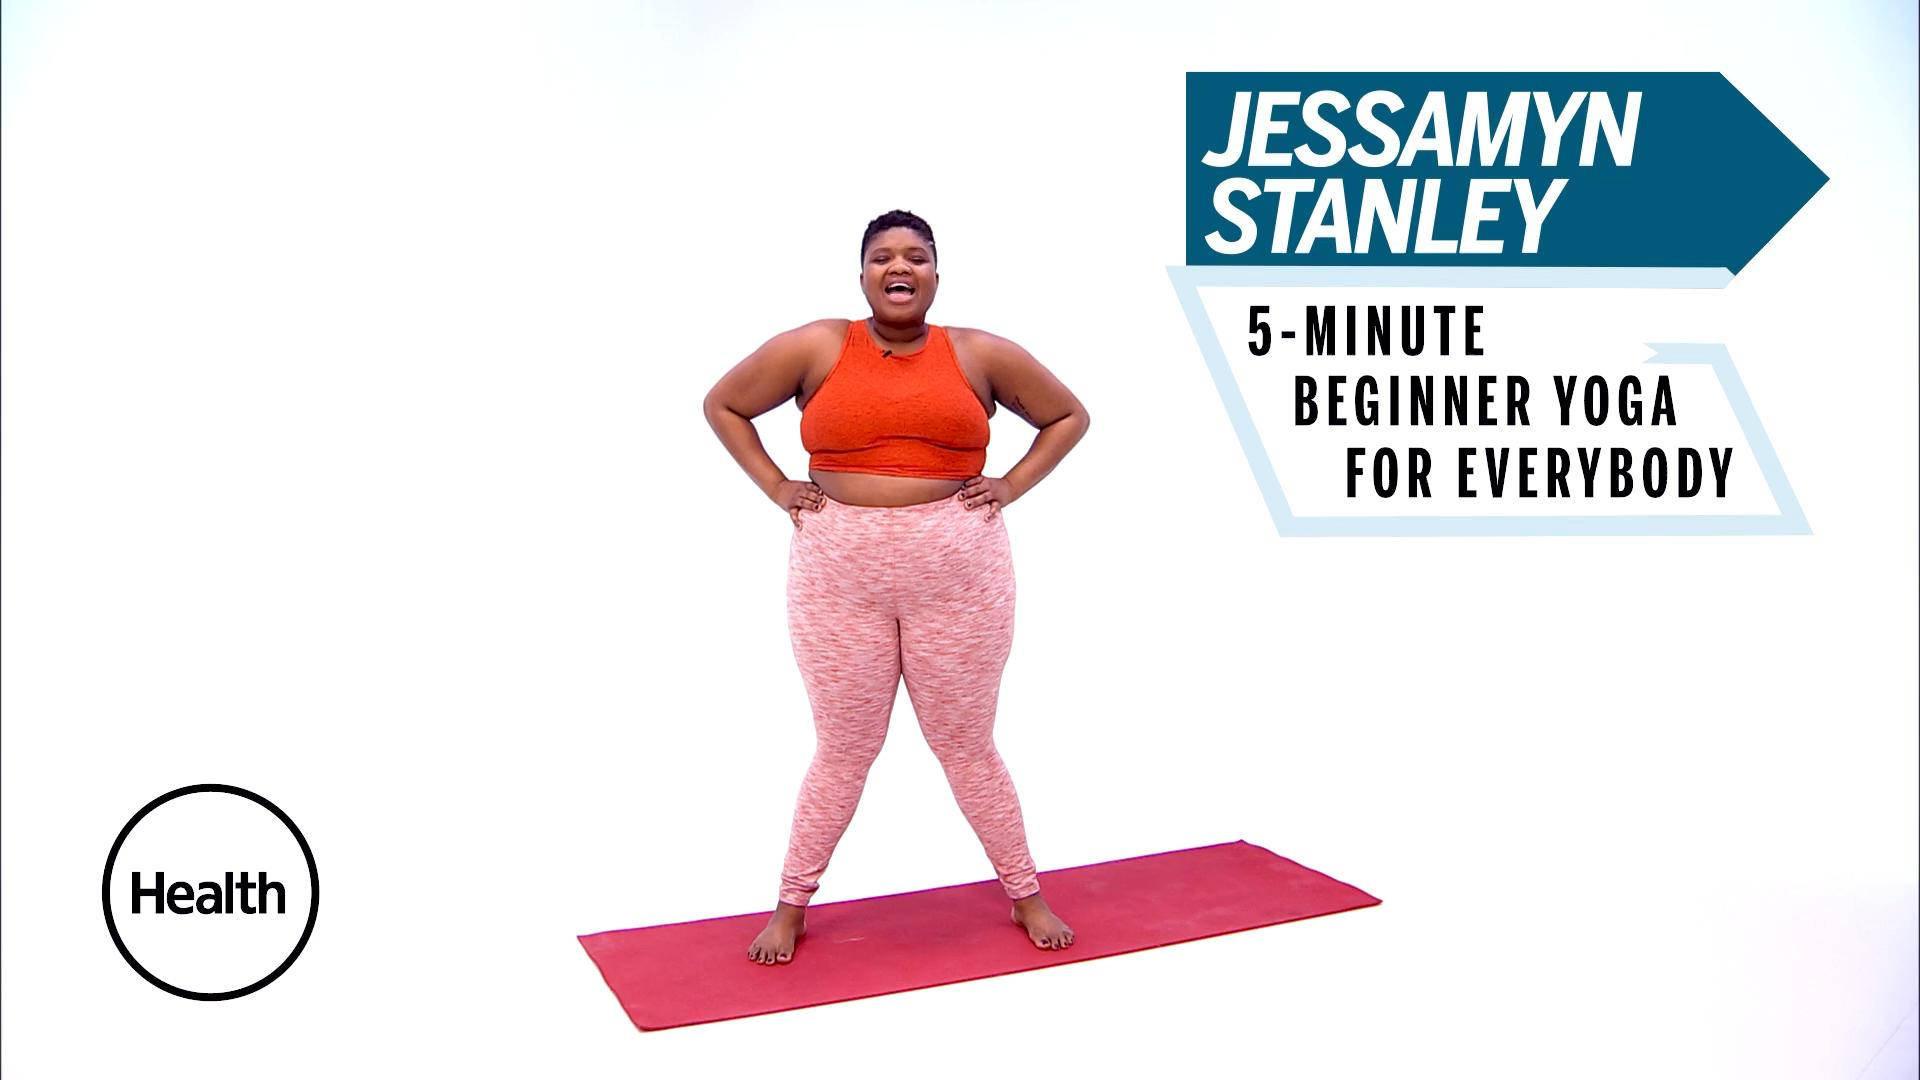 Jessamyn Stanley's 5-Minute Yoga for Beginners